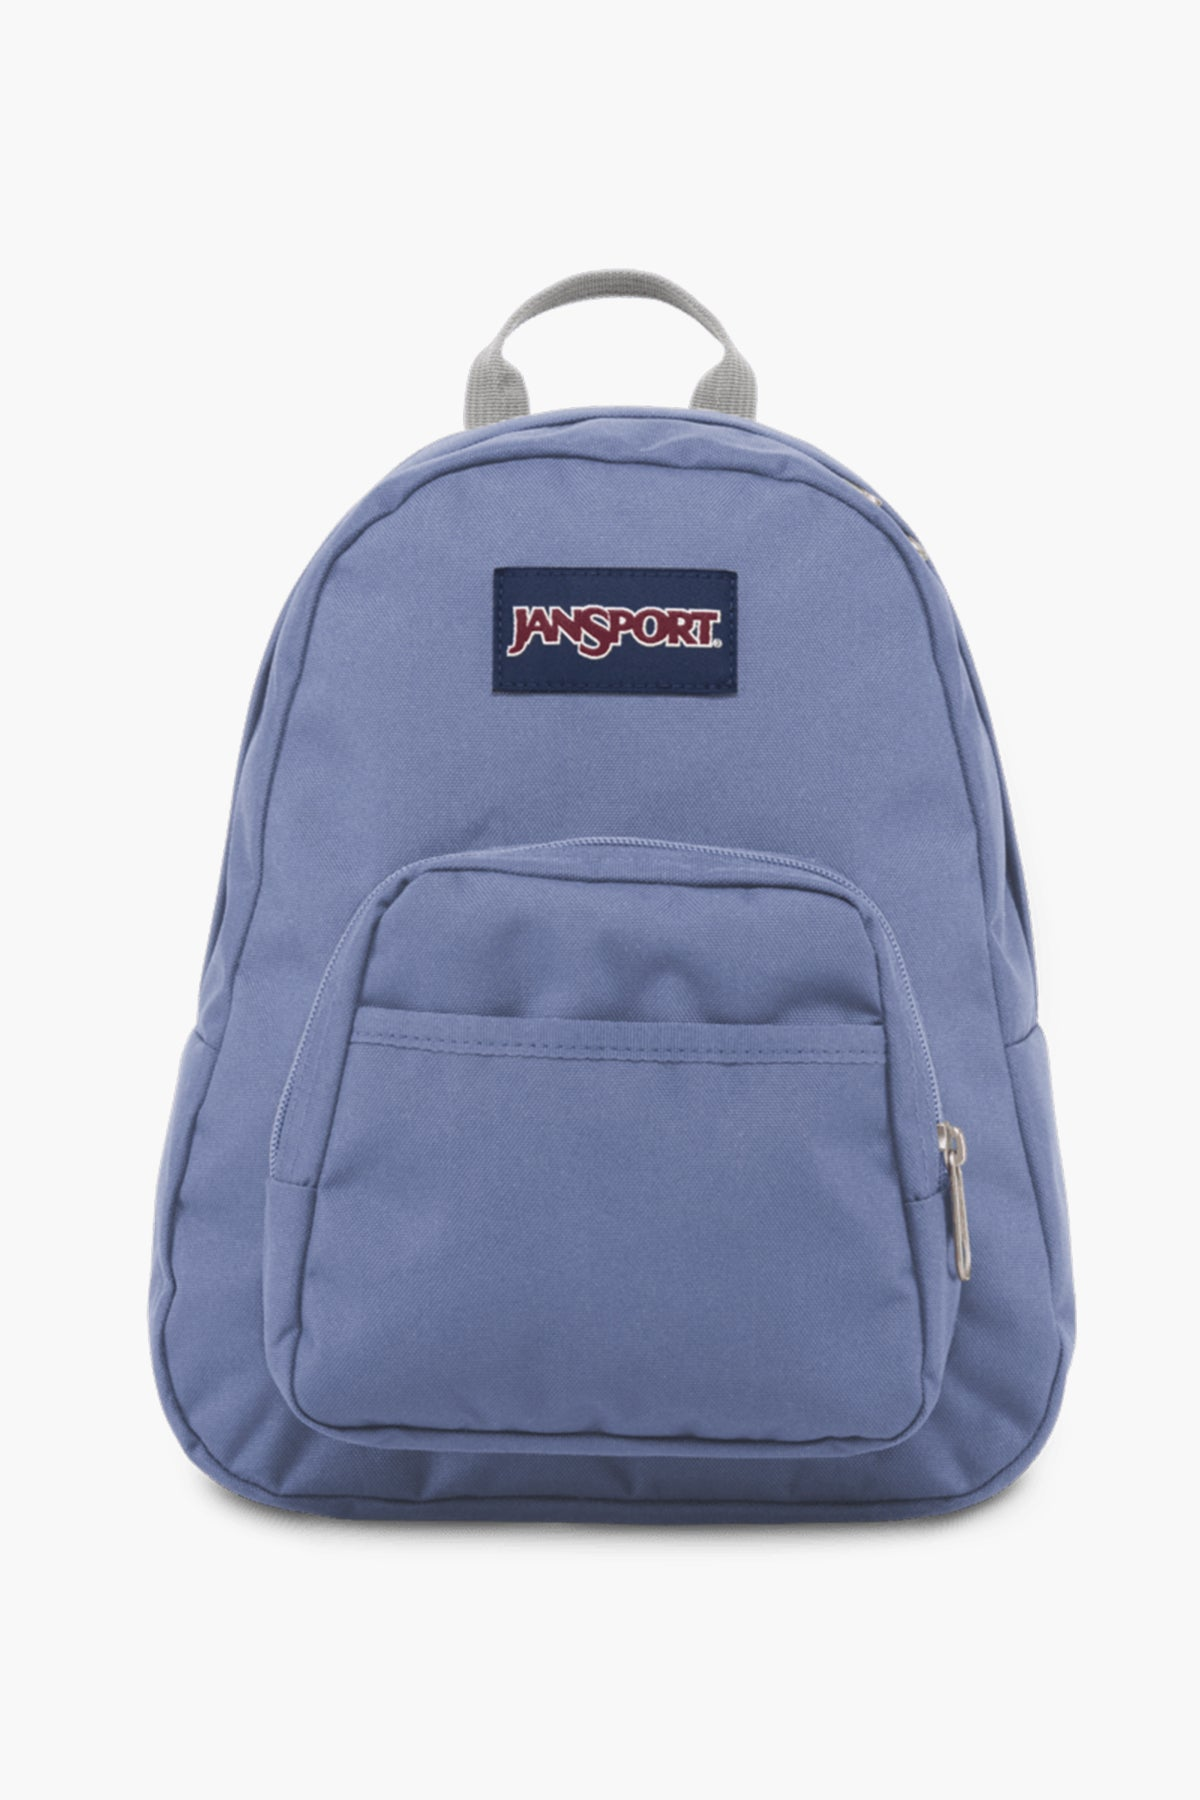 JanSport Half Pint Kids Backpack - Periwinkle